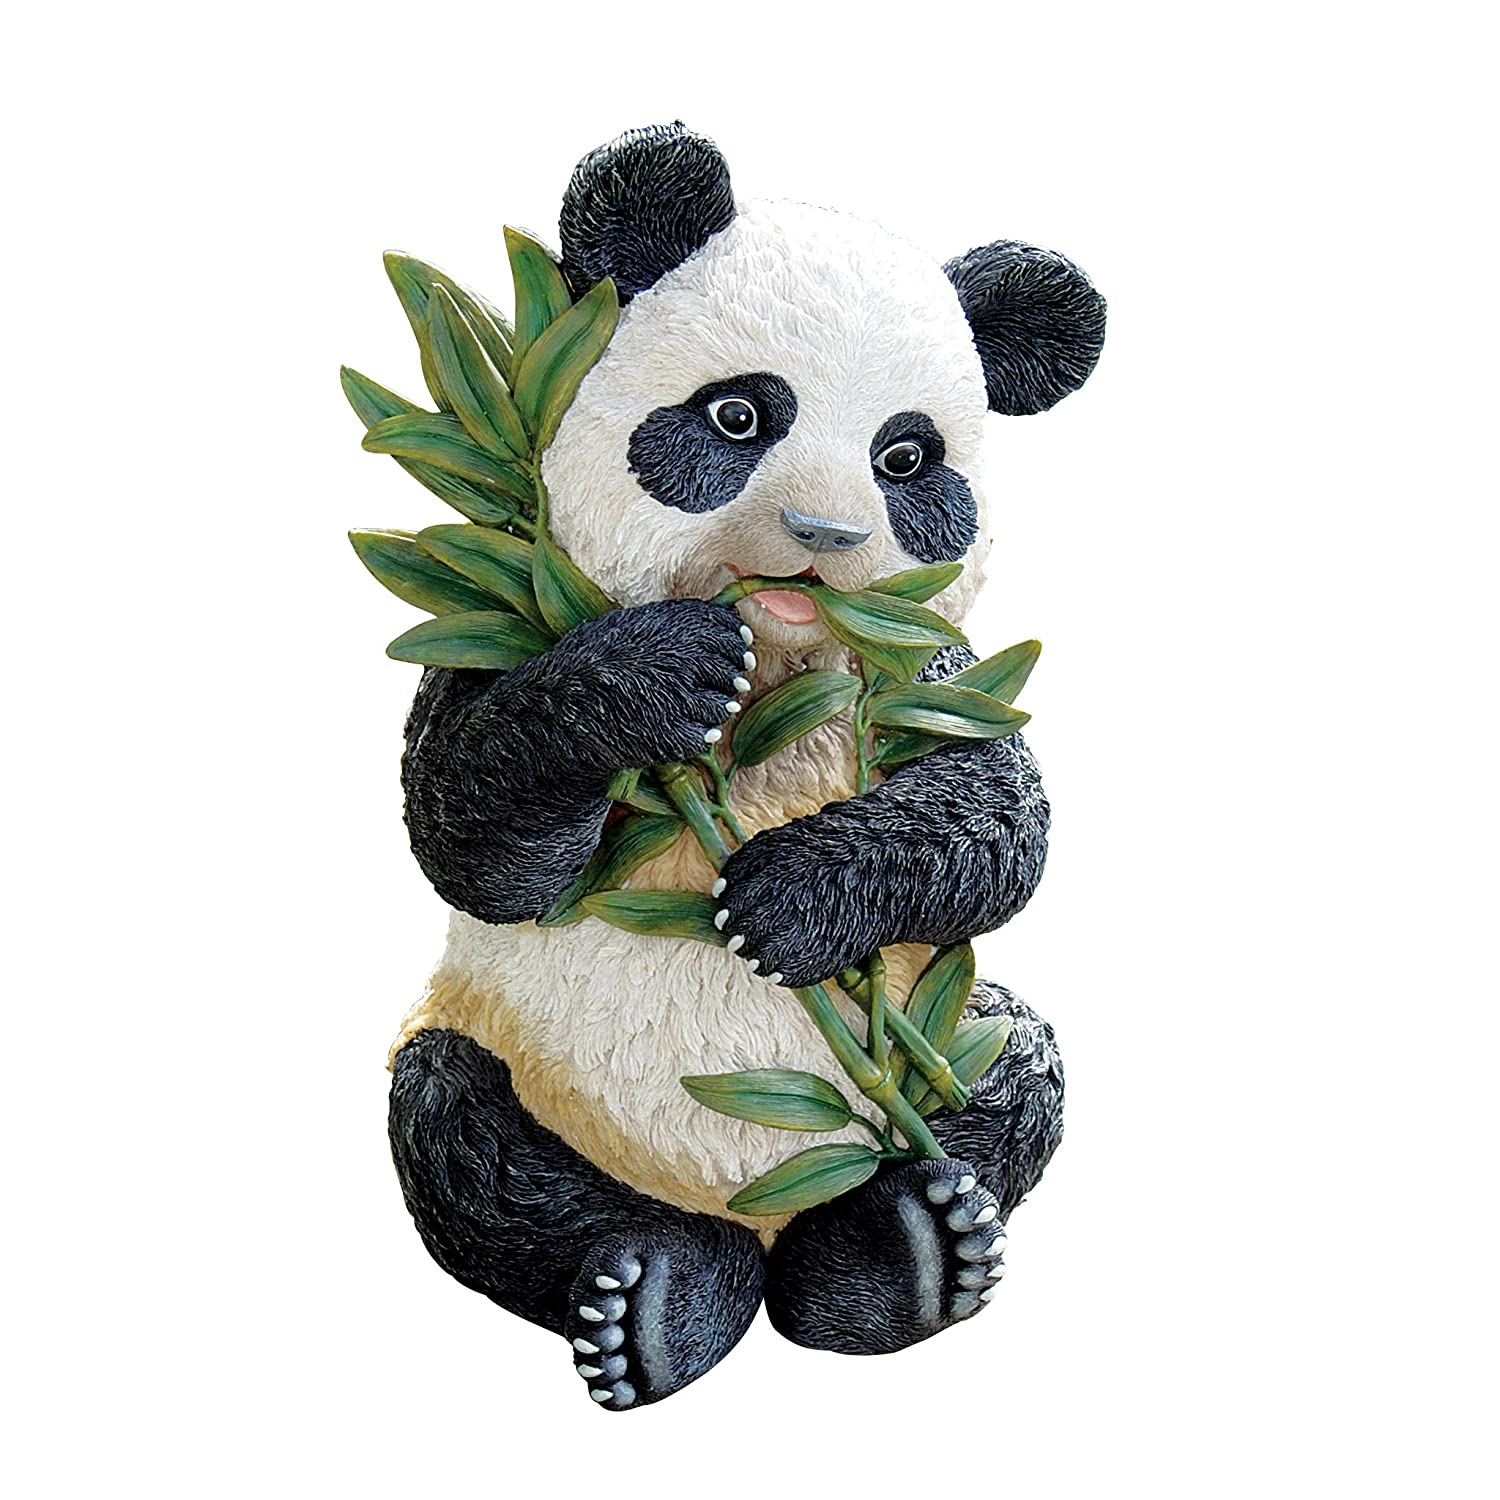 Design Toscano Tian Shan, the Panda Sculpture